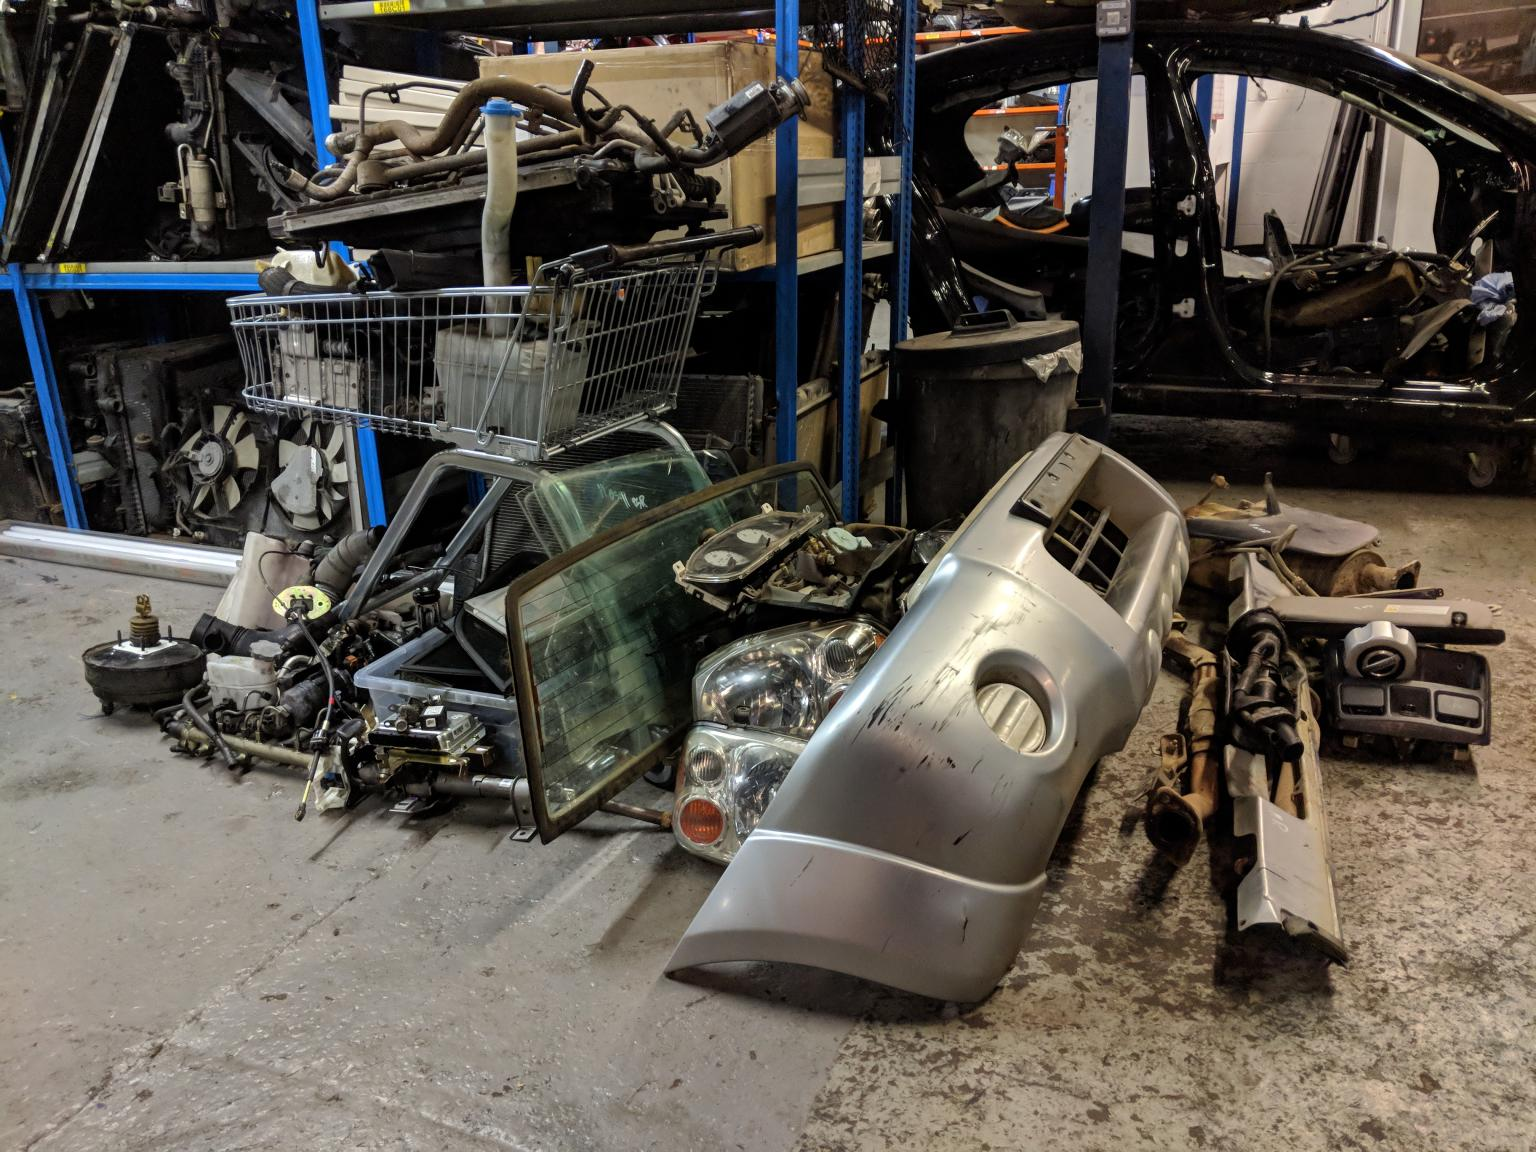 Nissan Navara Bumpers Parts Breaking In B4 Birmingham For 20 00 For Sale Shpock